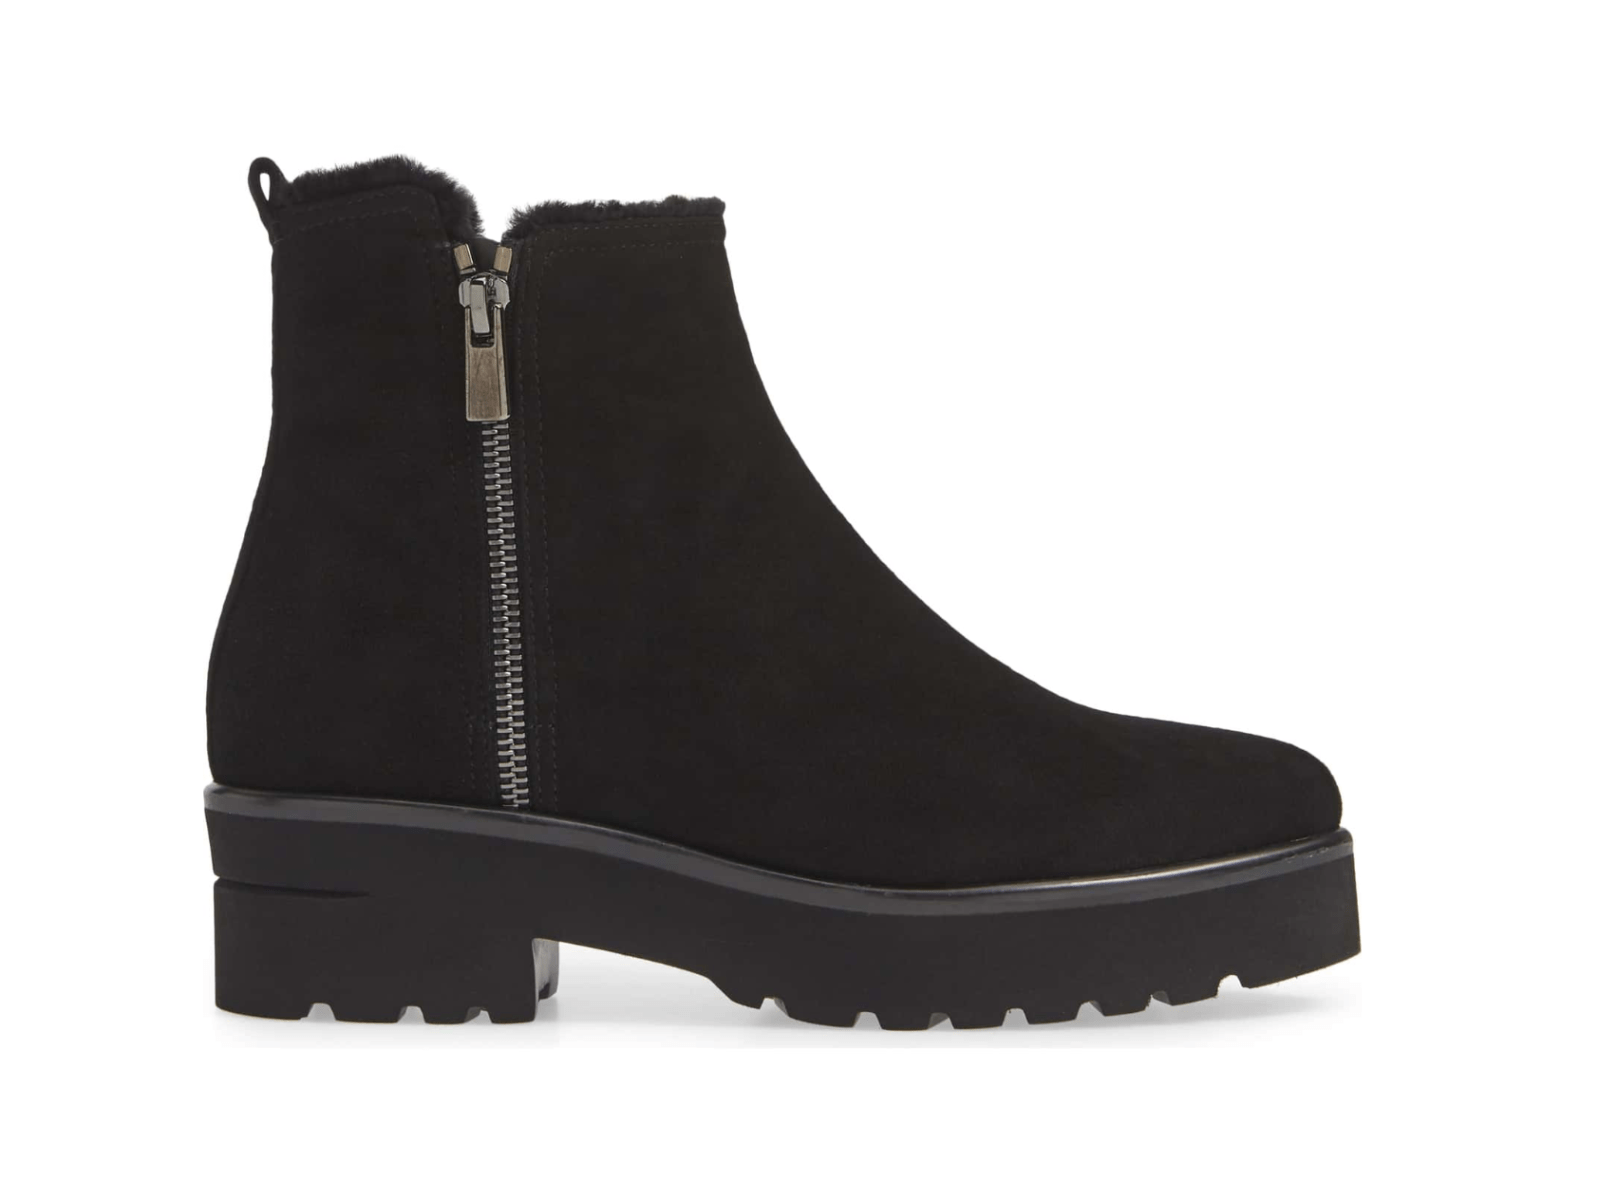 7 Trendy Booties Every Woman Should Own